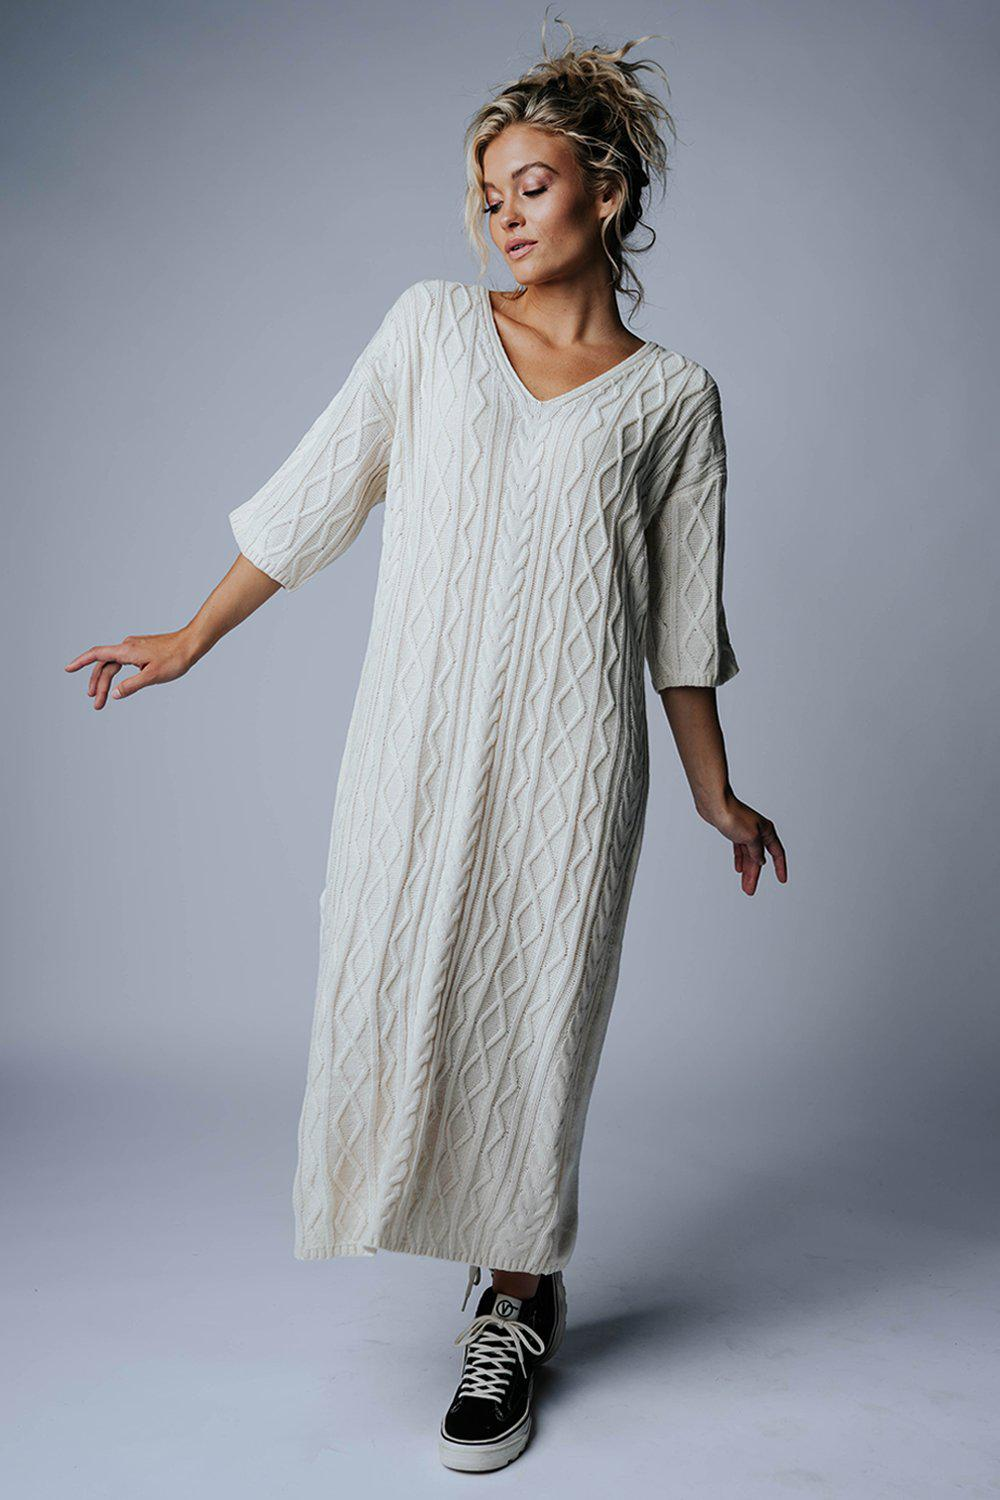 best_seller, Tender Love Midi Sweater Dress in Ivory, Dress, women's clothing, dresses, skirts, coats, jackets, shoes, boots, tops, tee shirts, jeans, free people, levi's, rollas, jumpsuits, bottoms, tops, sweaters, pullovers, pants, shorts, sweats,.